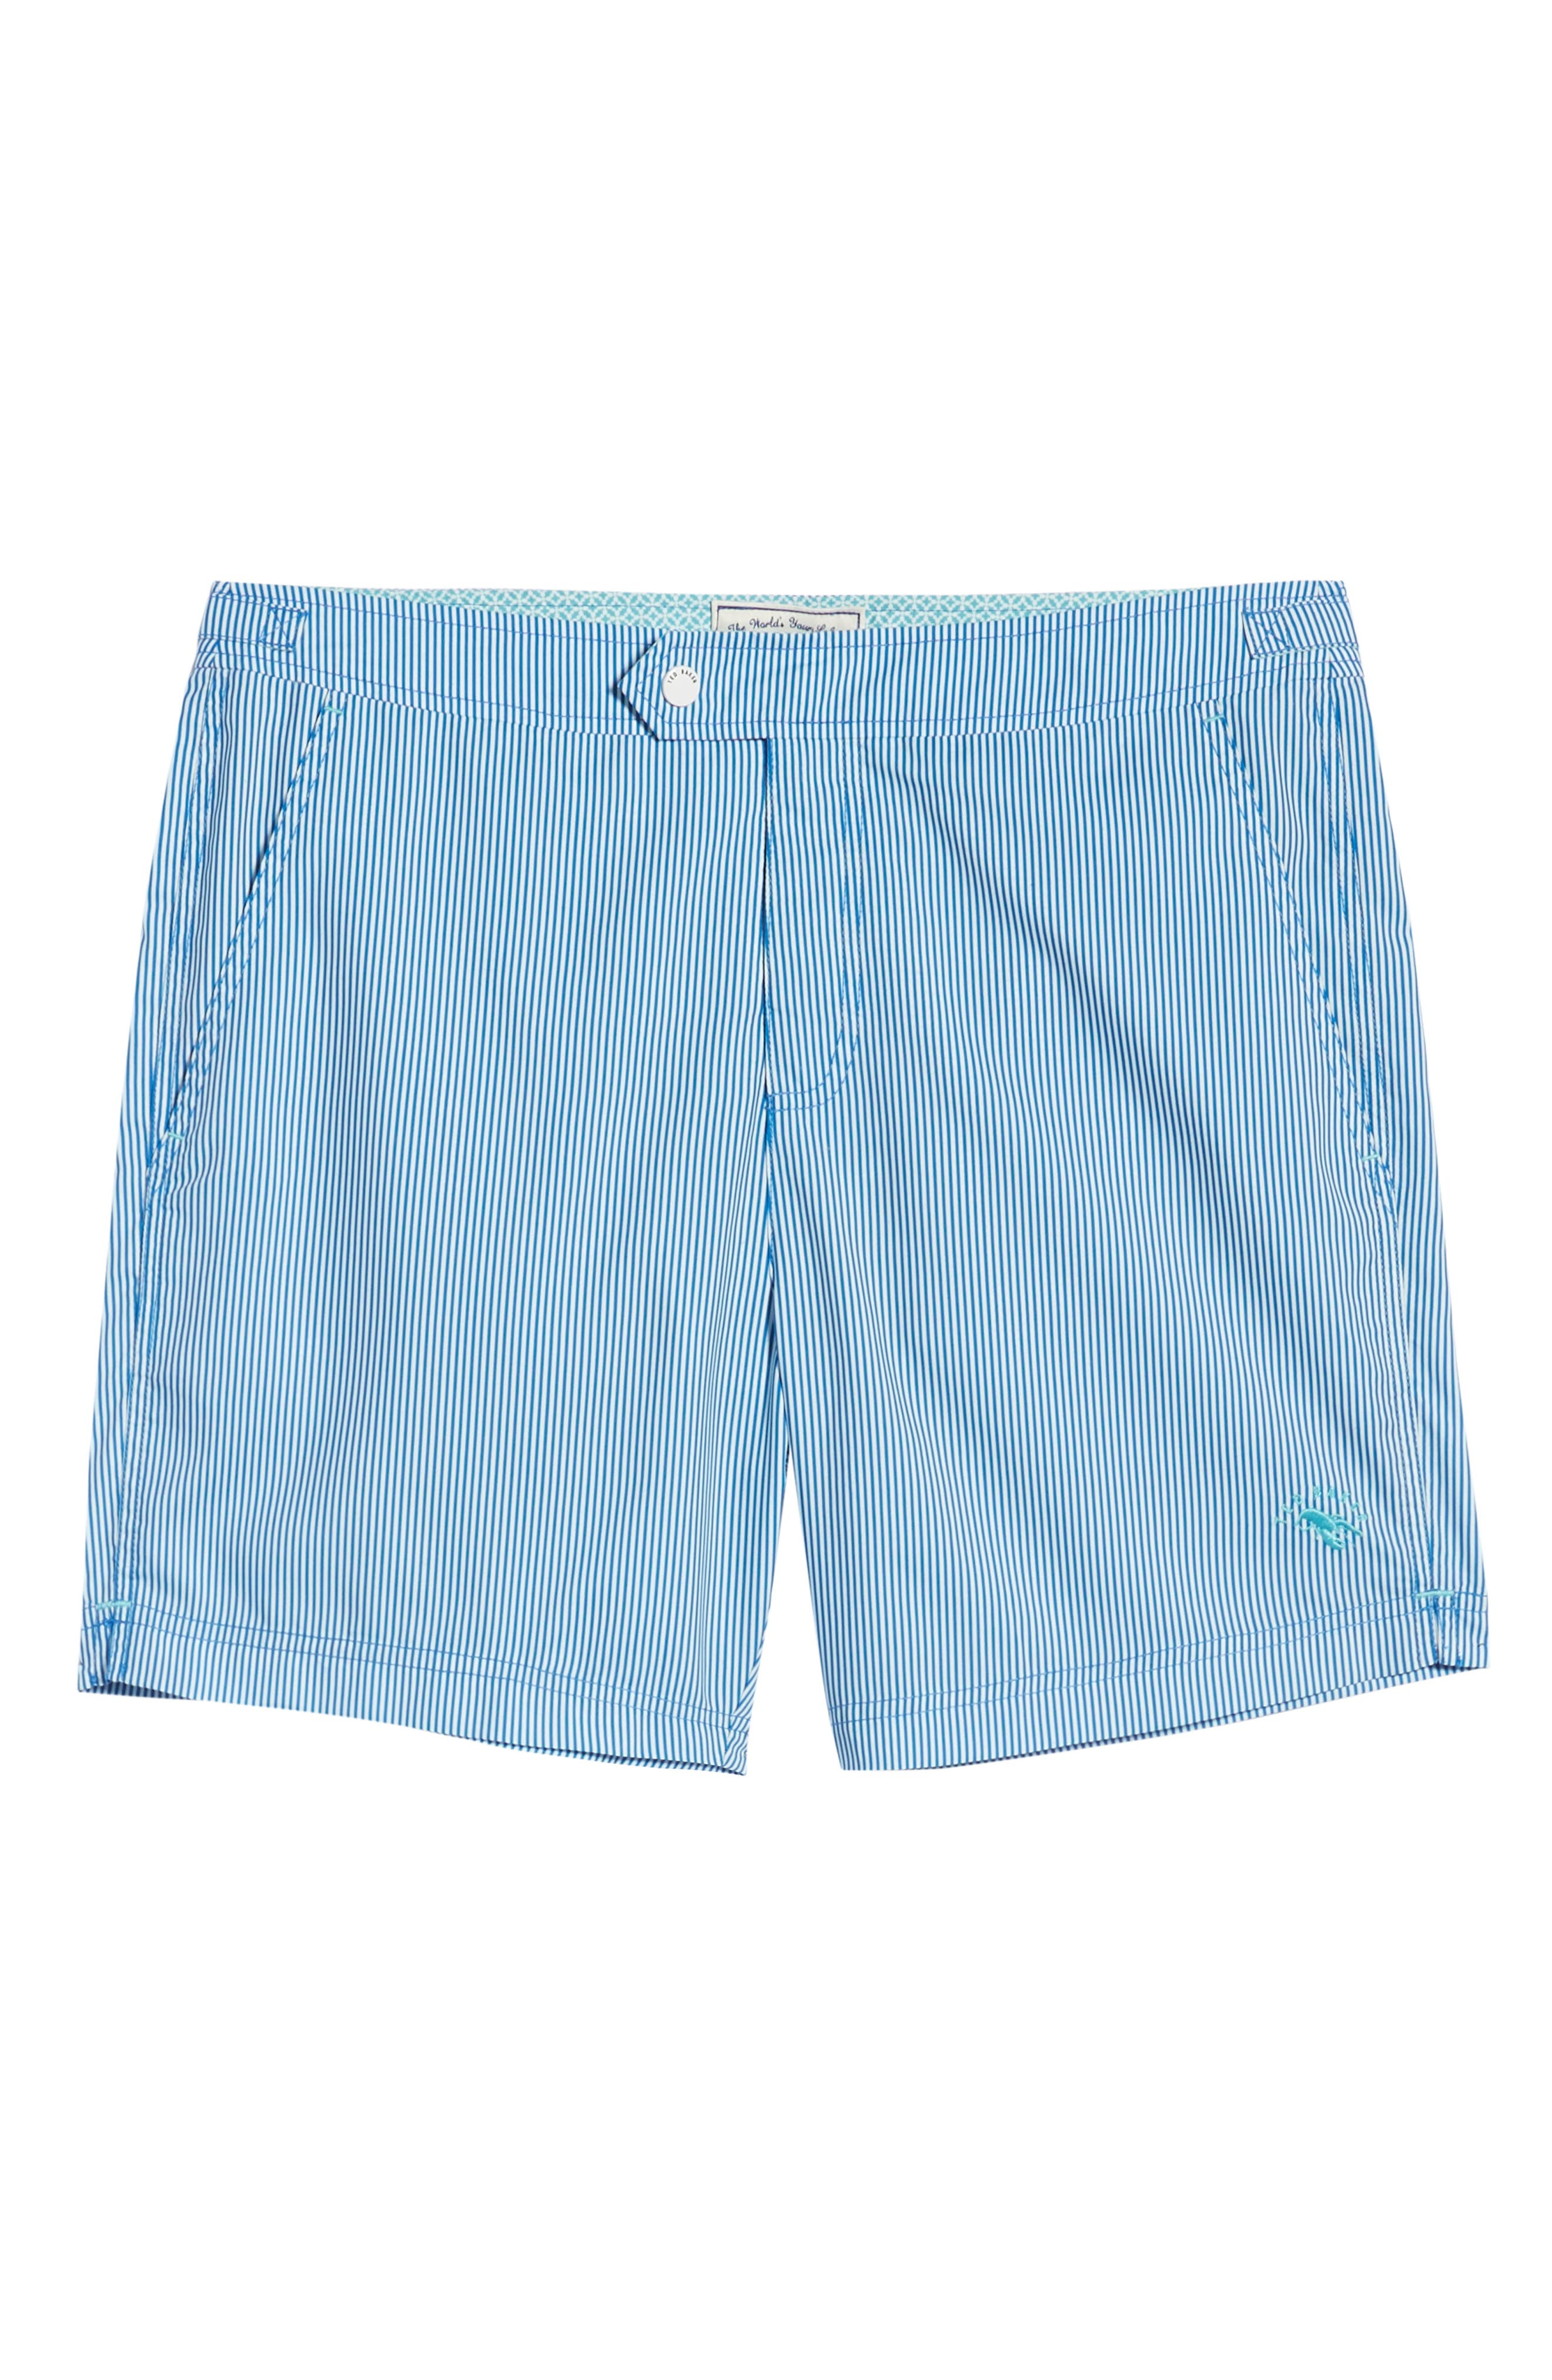 TED BAKER LONDON, Seel Stripe Swim Trunks, Alternate thumbnail 6, color, BLUE